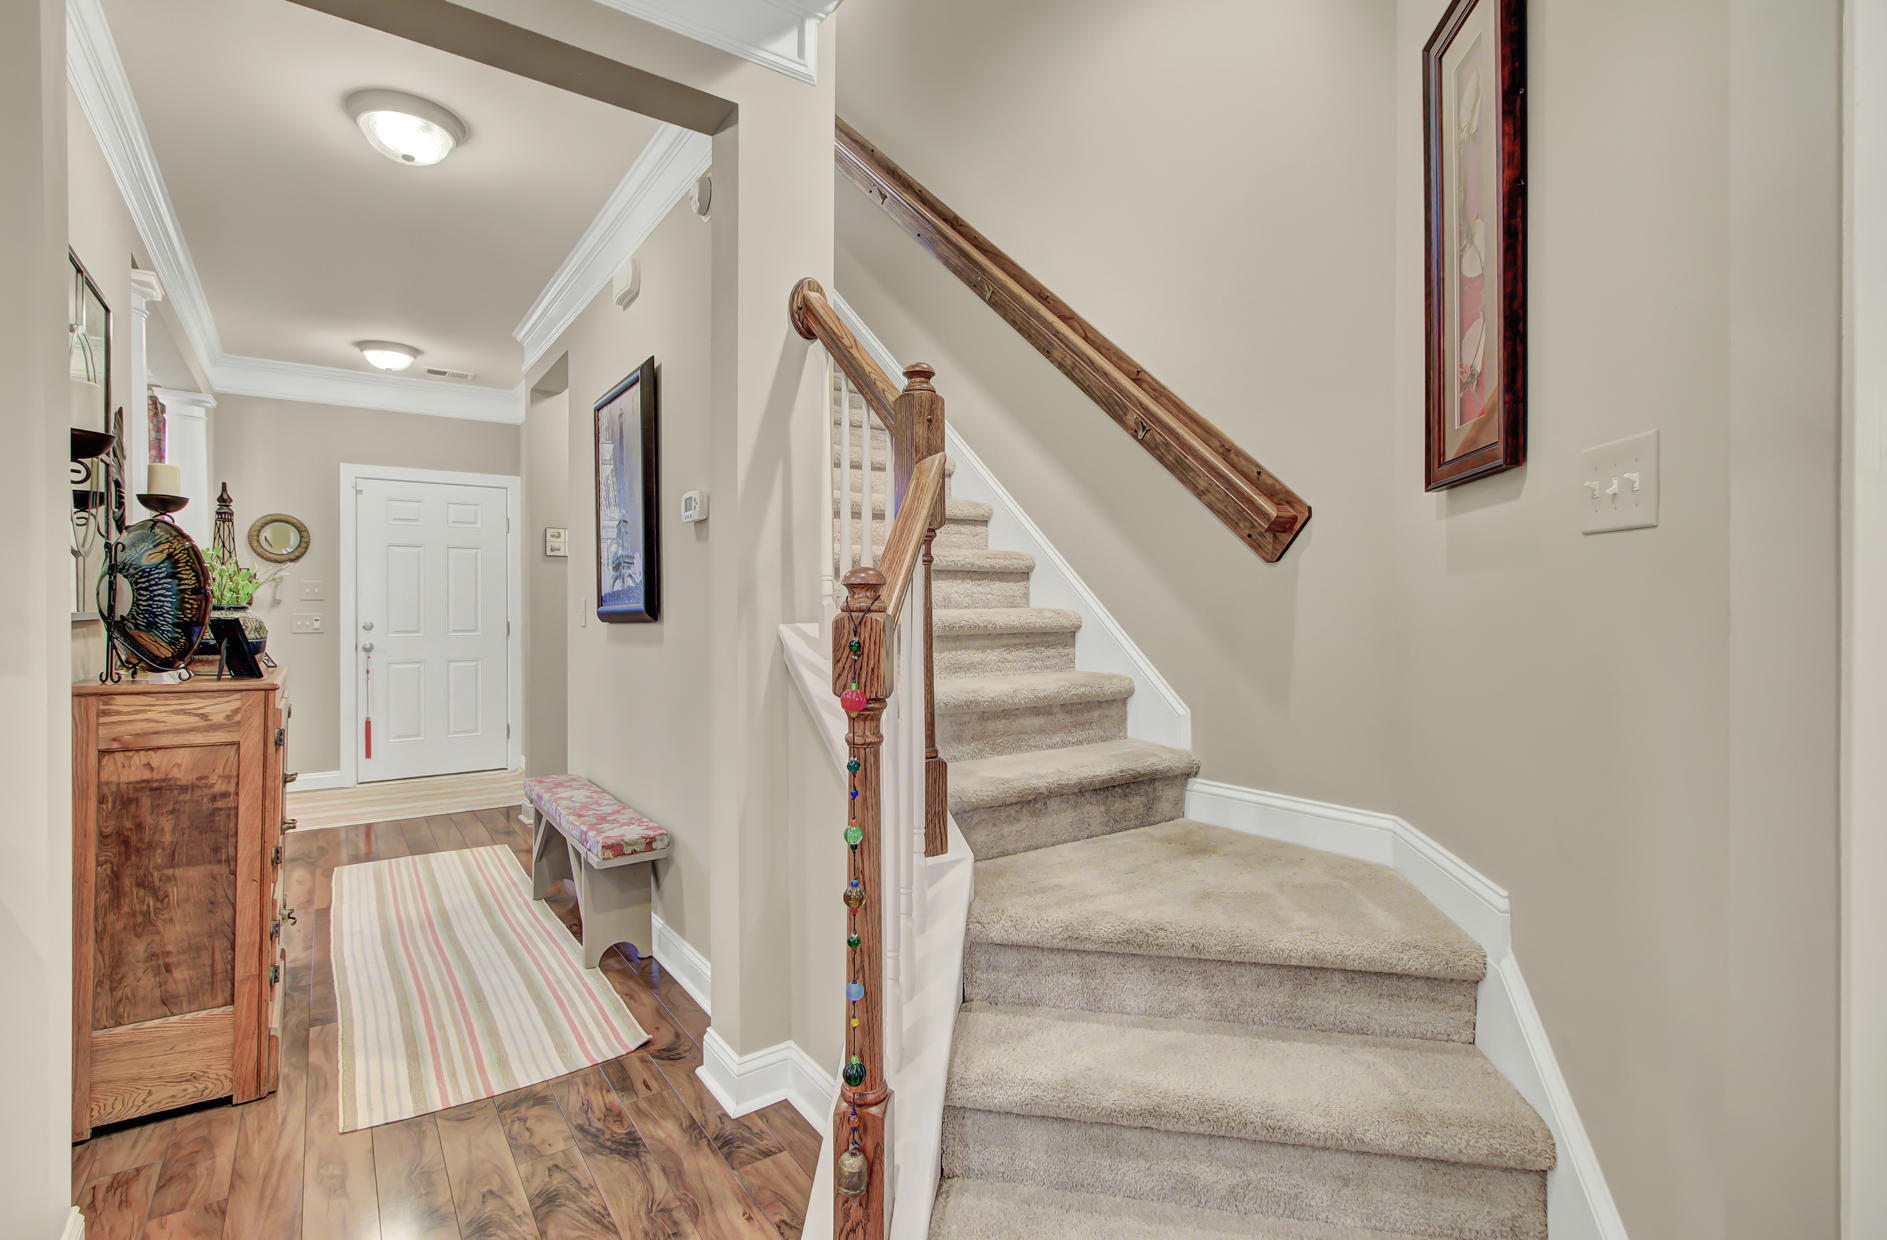 Boltons Landing Homes For Sale - 3034 Scuba, Charleston, SC - 7